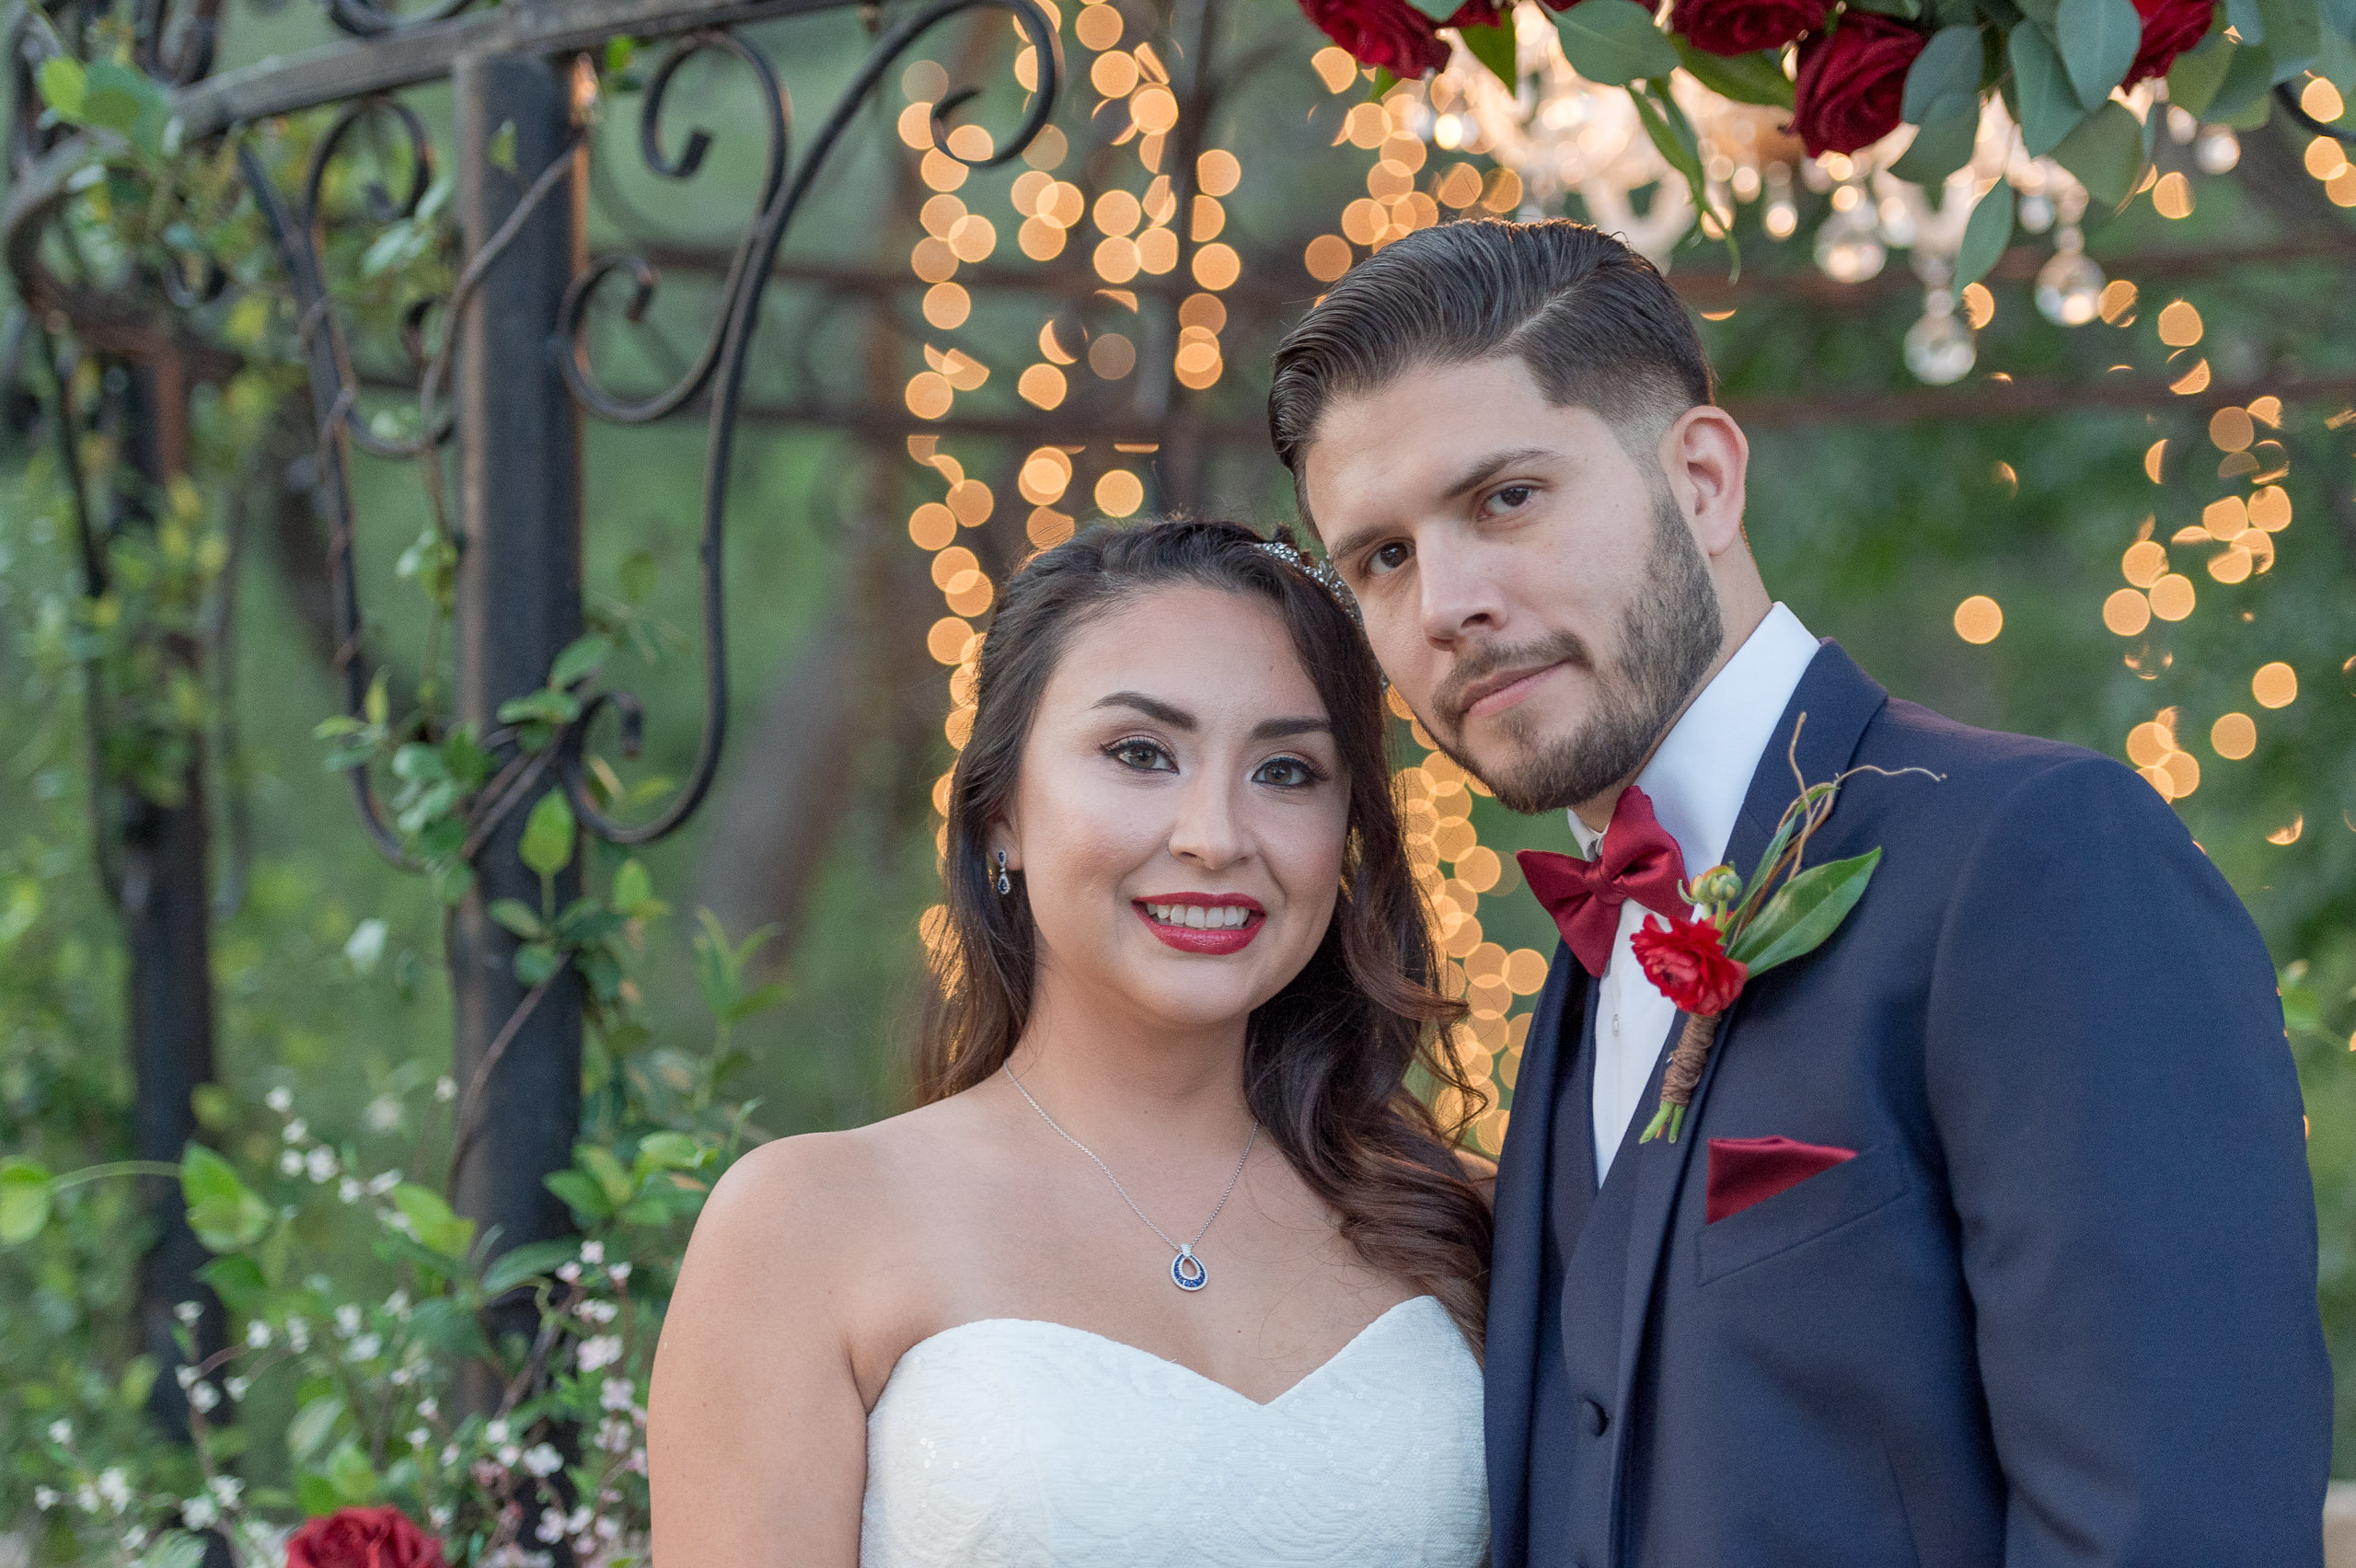 red-white-and-blue-wedding-inspiration-helotes-hill-country-wedding-san-antonio-wedding-photographers-_4S15998